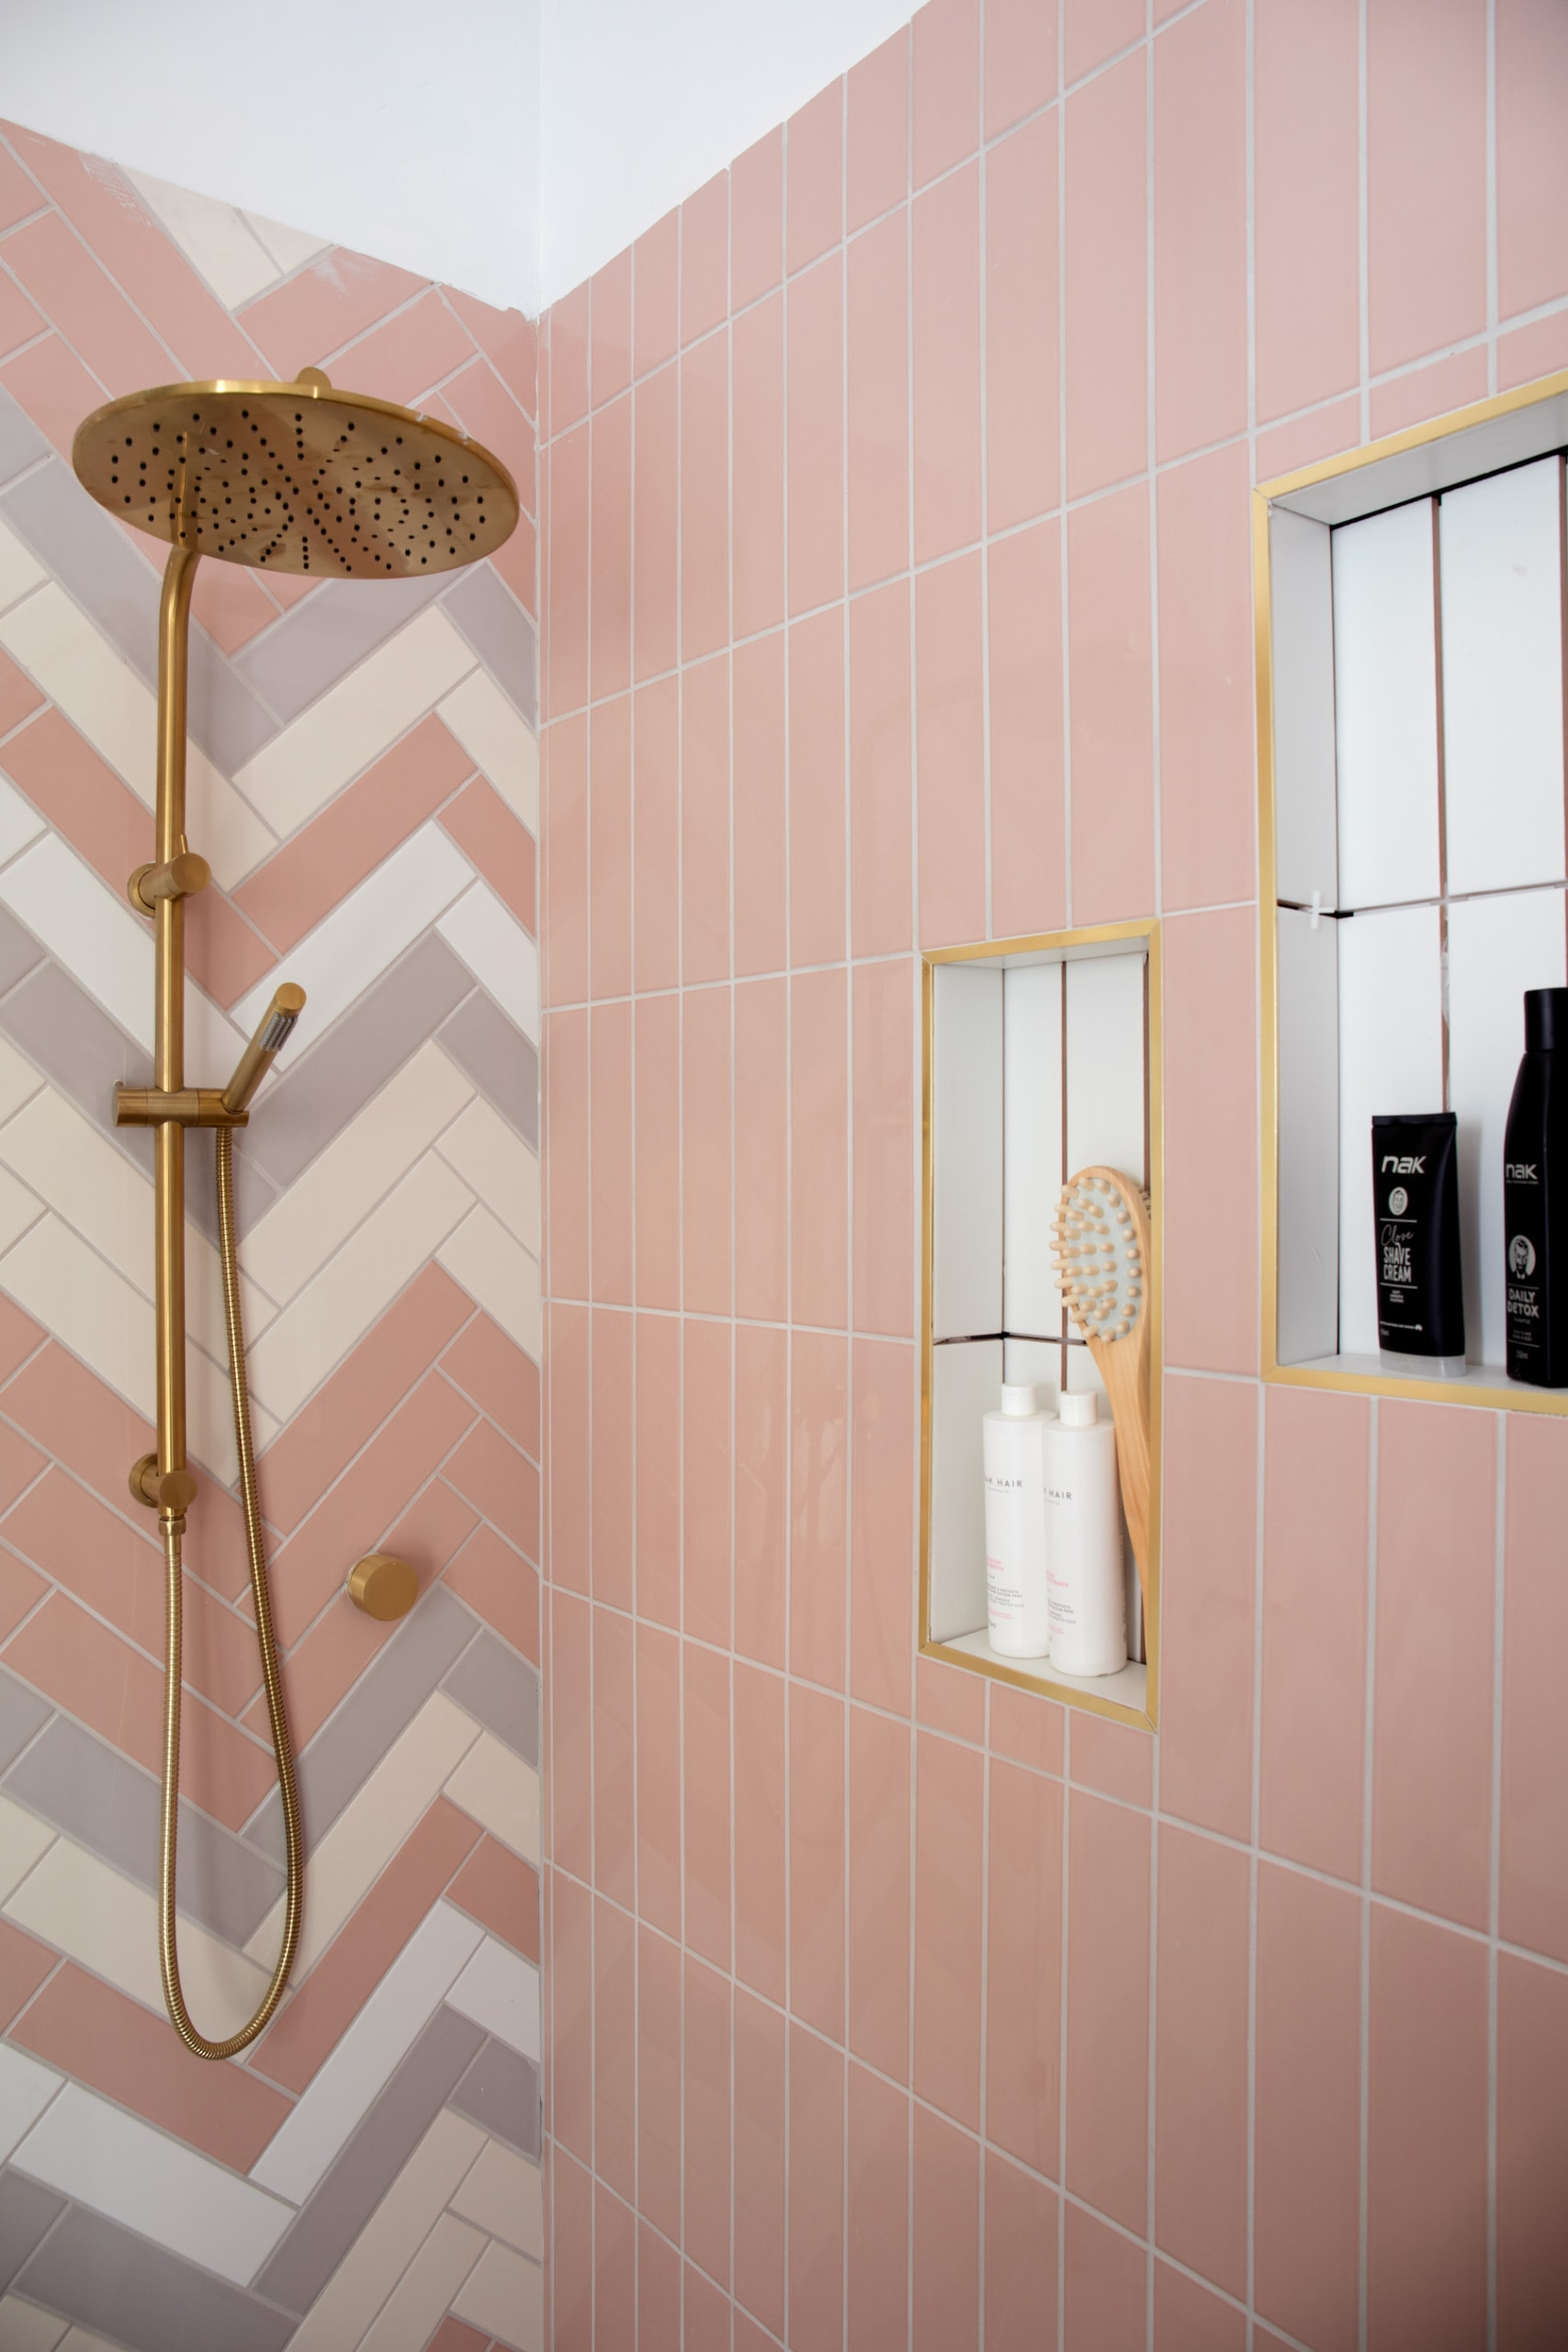 house rules 2020 penthouse reveal pink bathroom tiles with gold trim